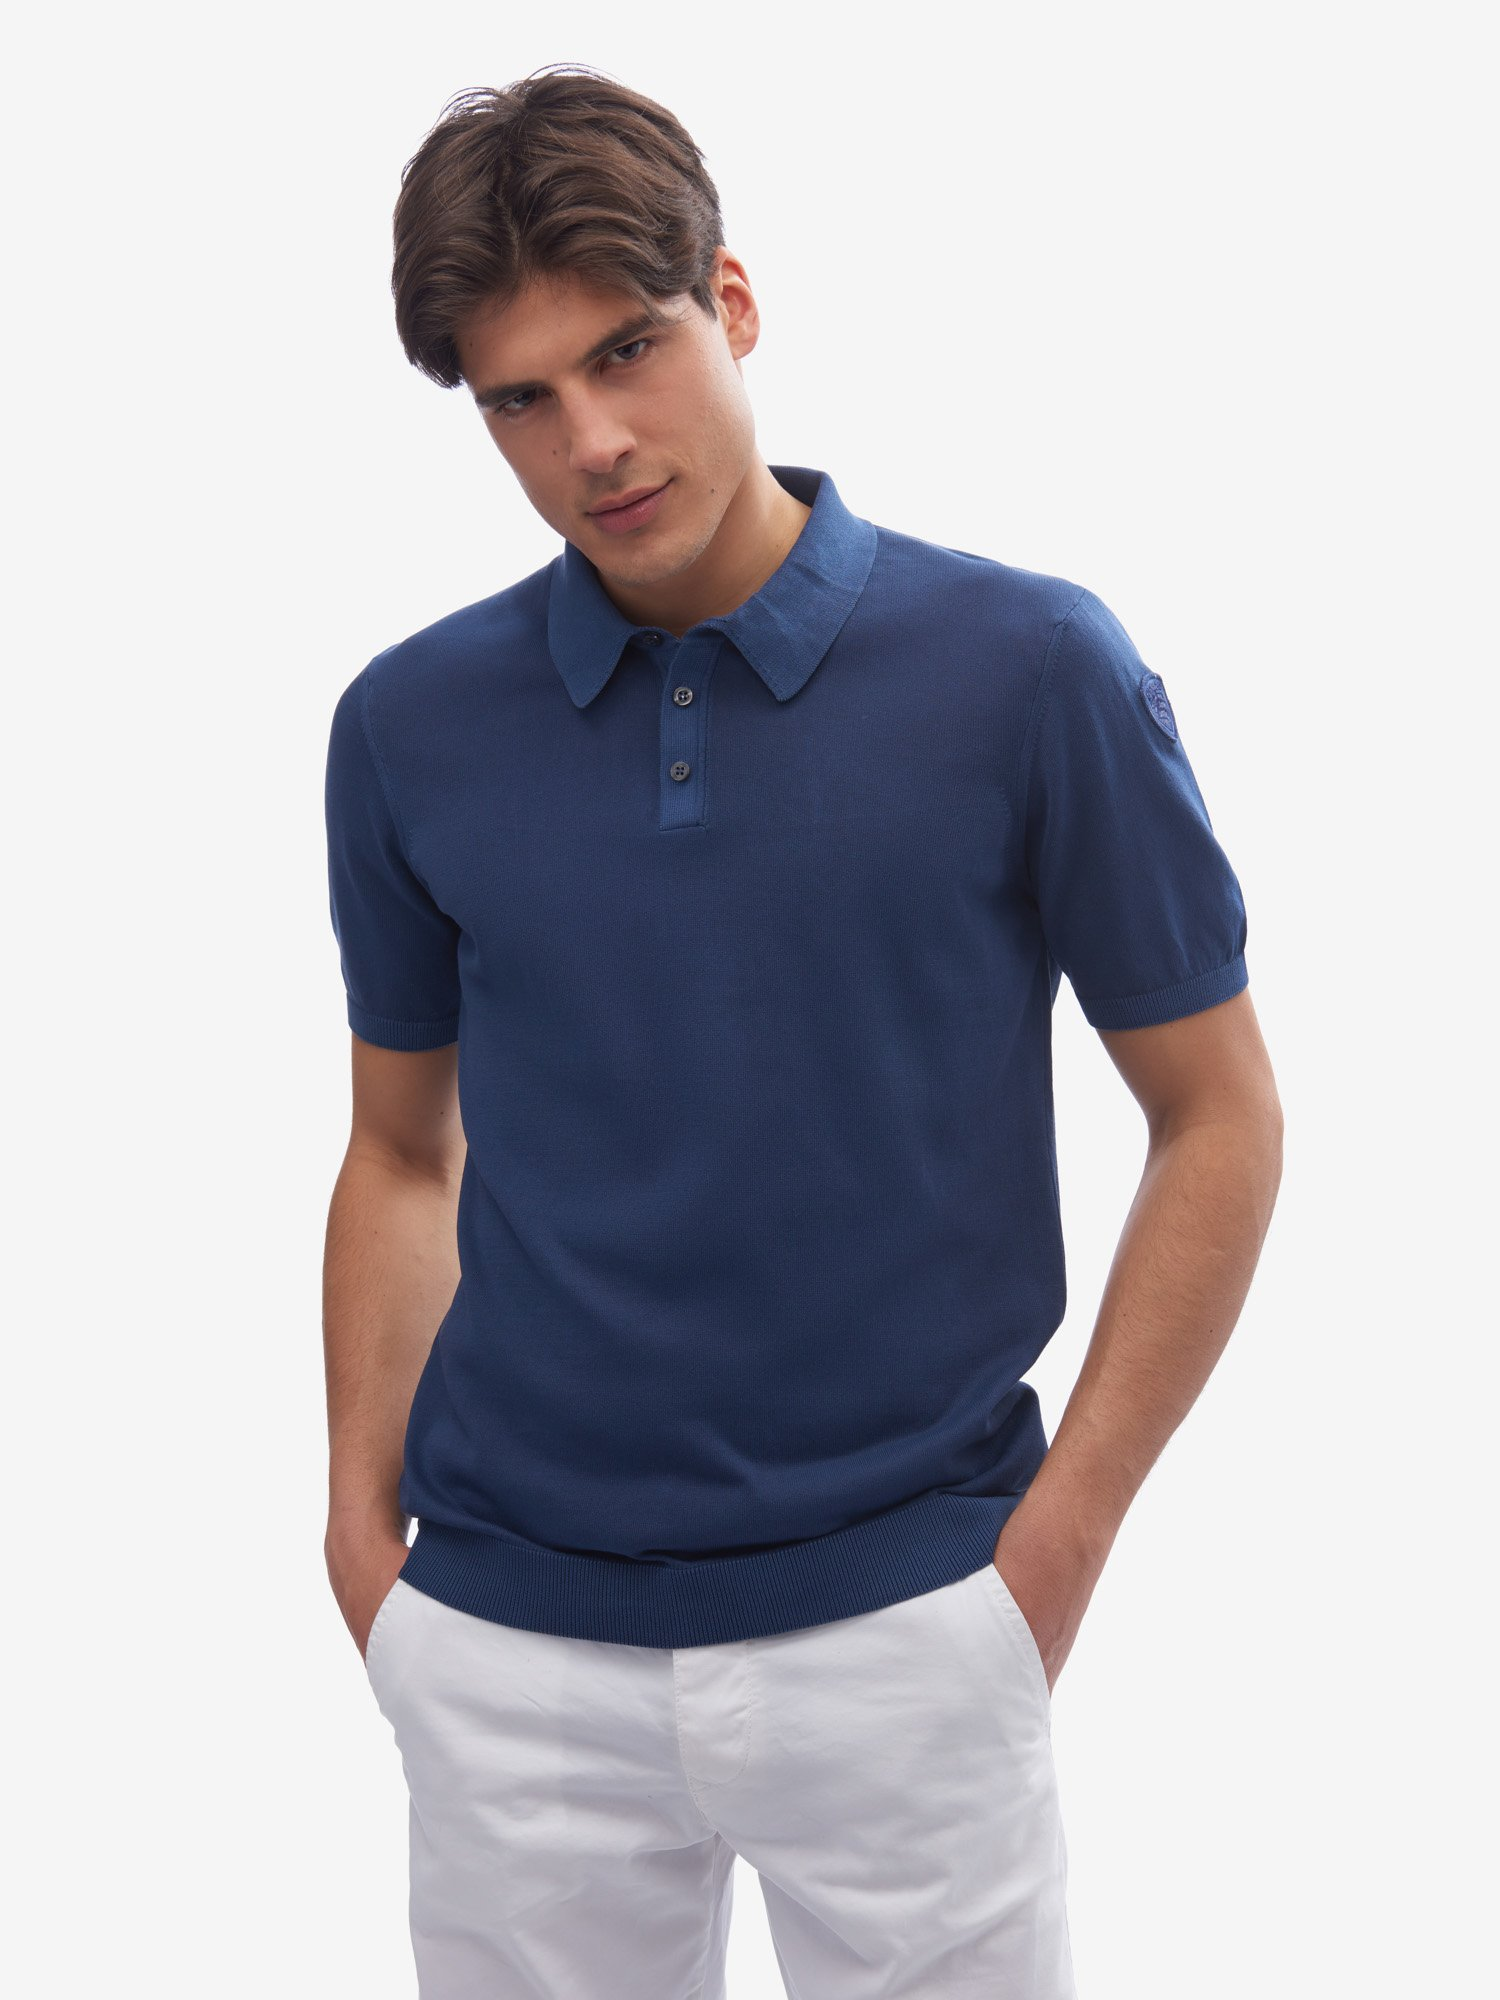 PULL TYPE POLO - Blauer